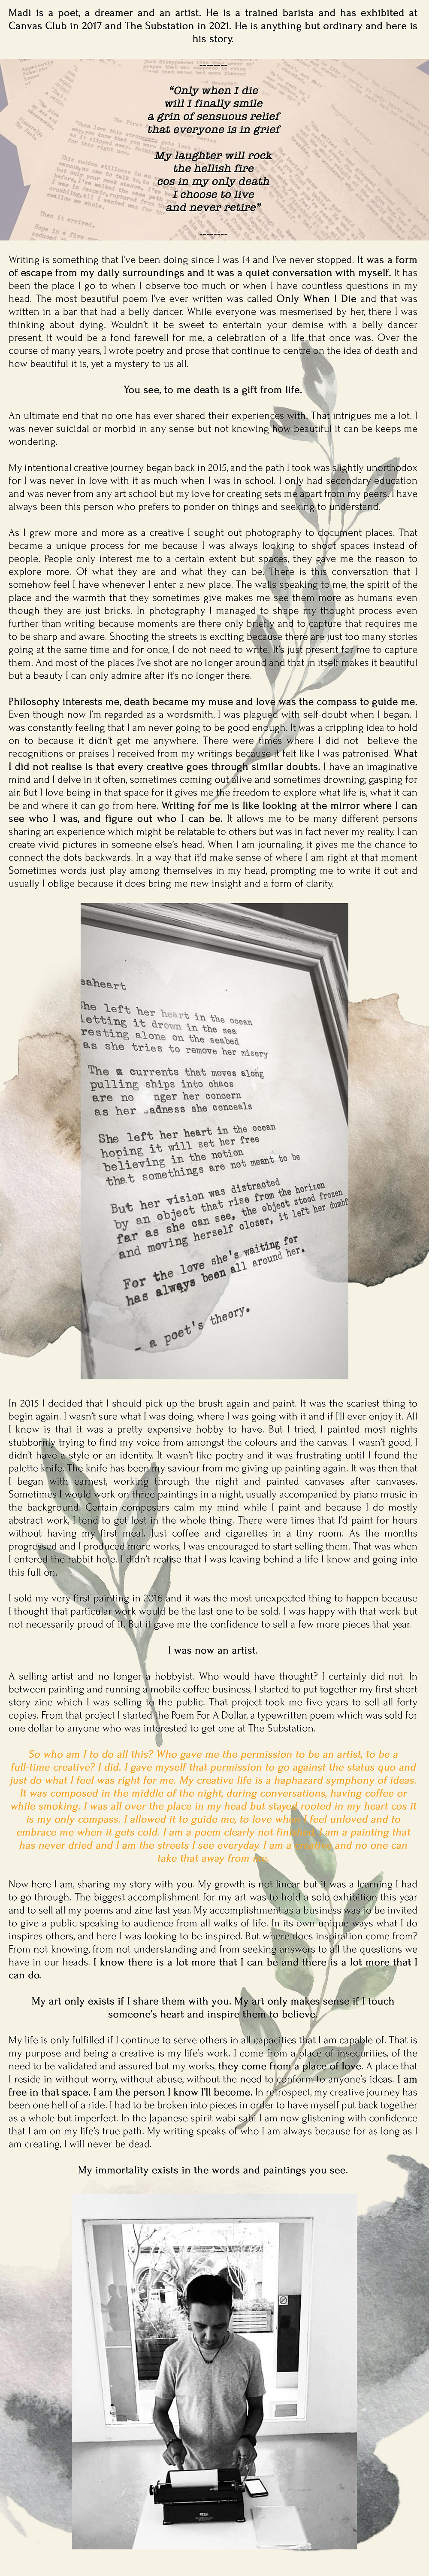 blurb magazine. blurbmag. words by a poet's theory. madi. arts and culture. @blurb.mag